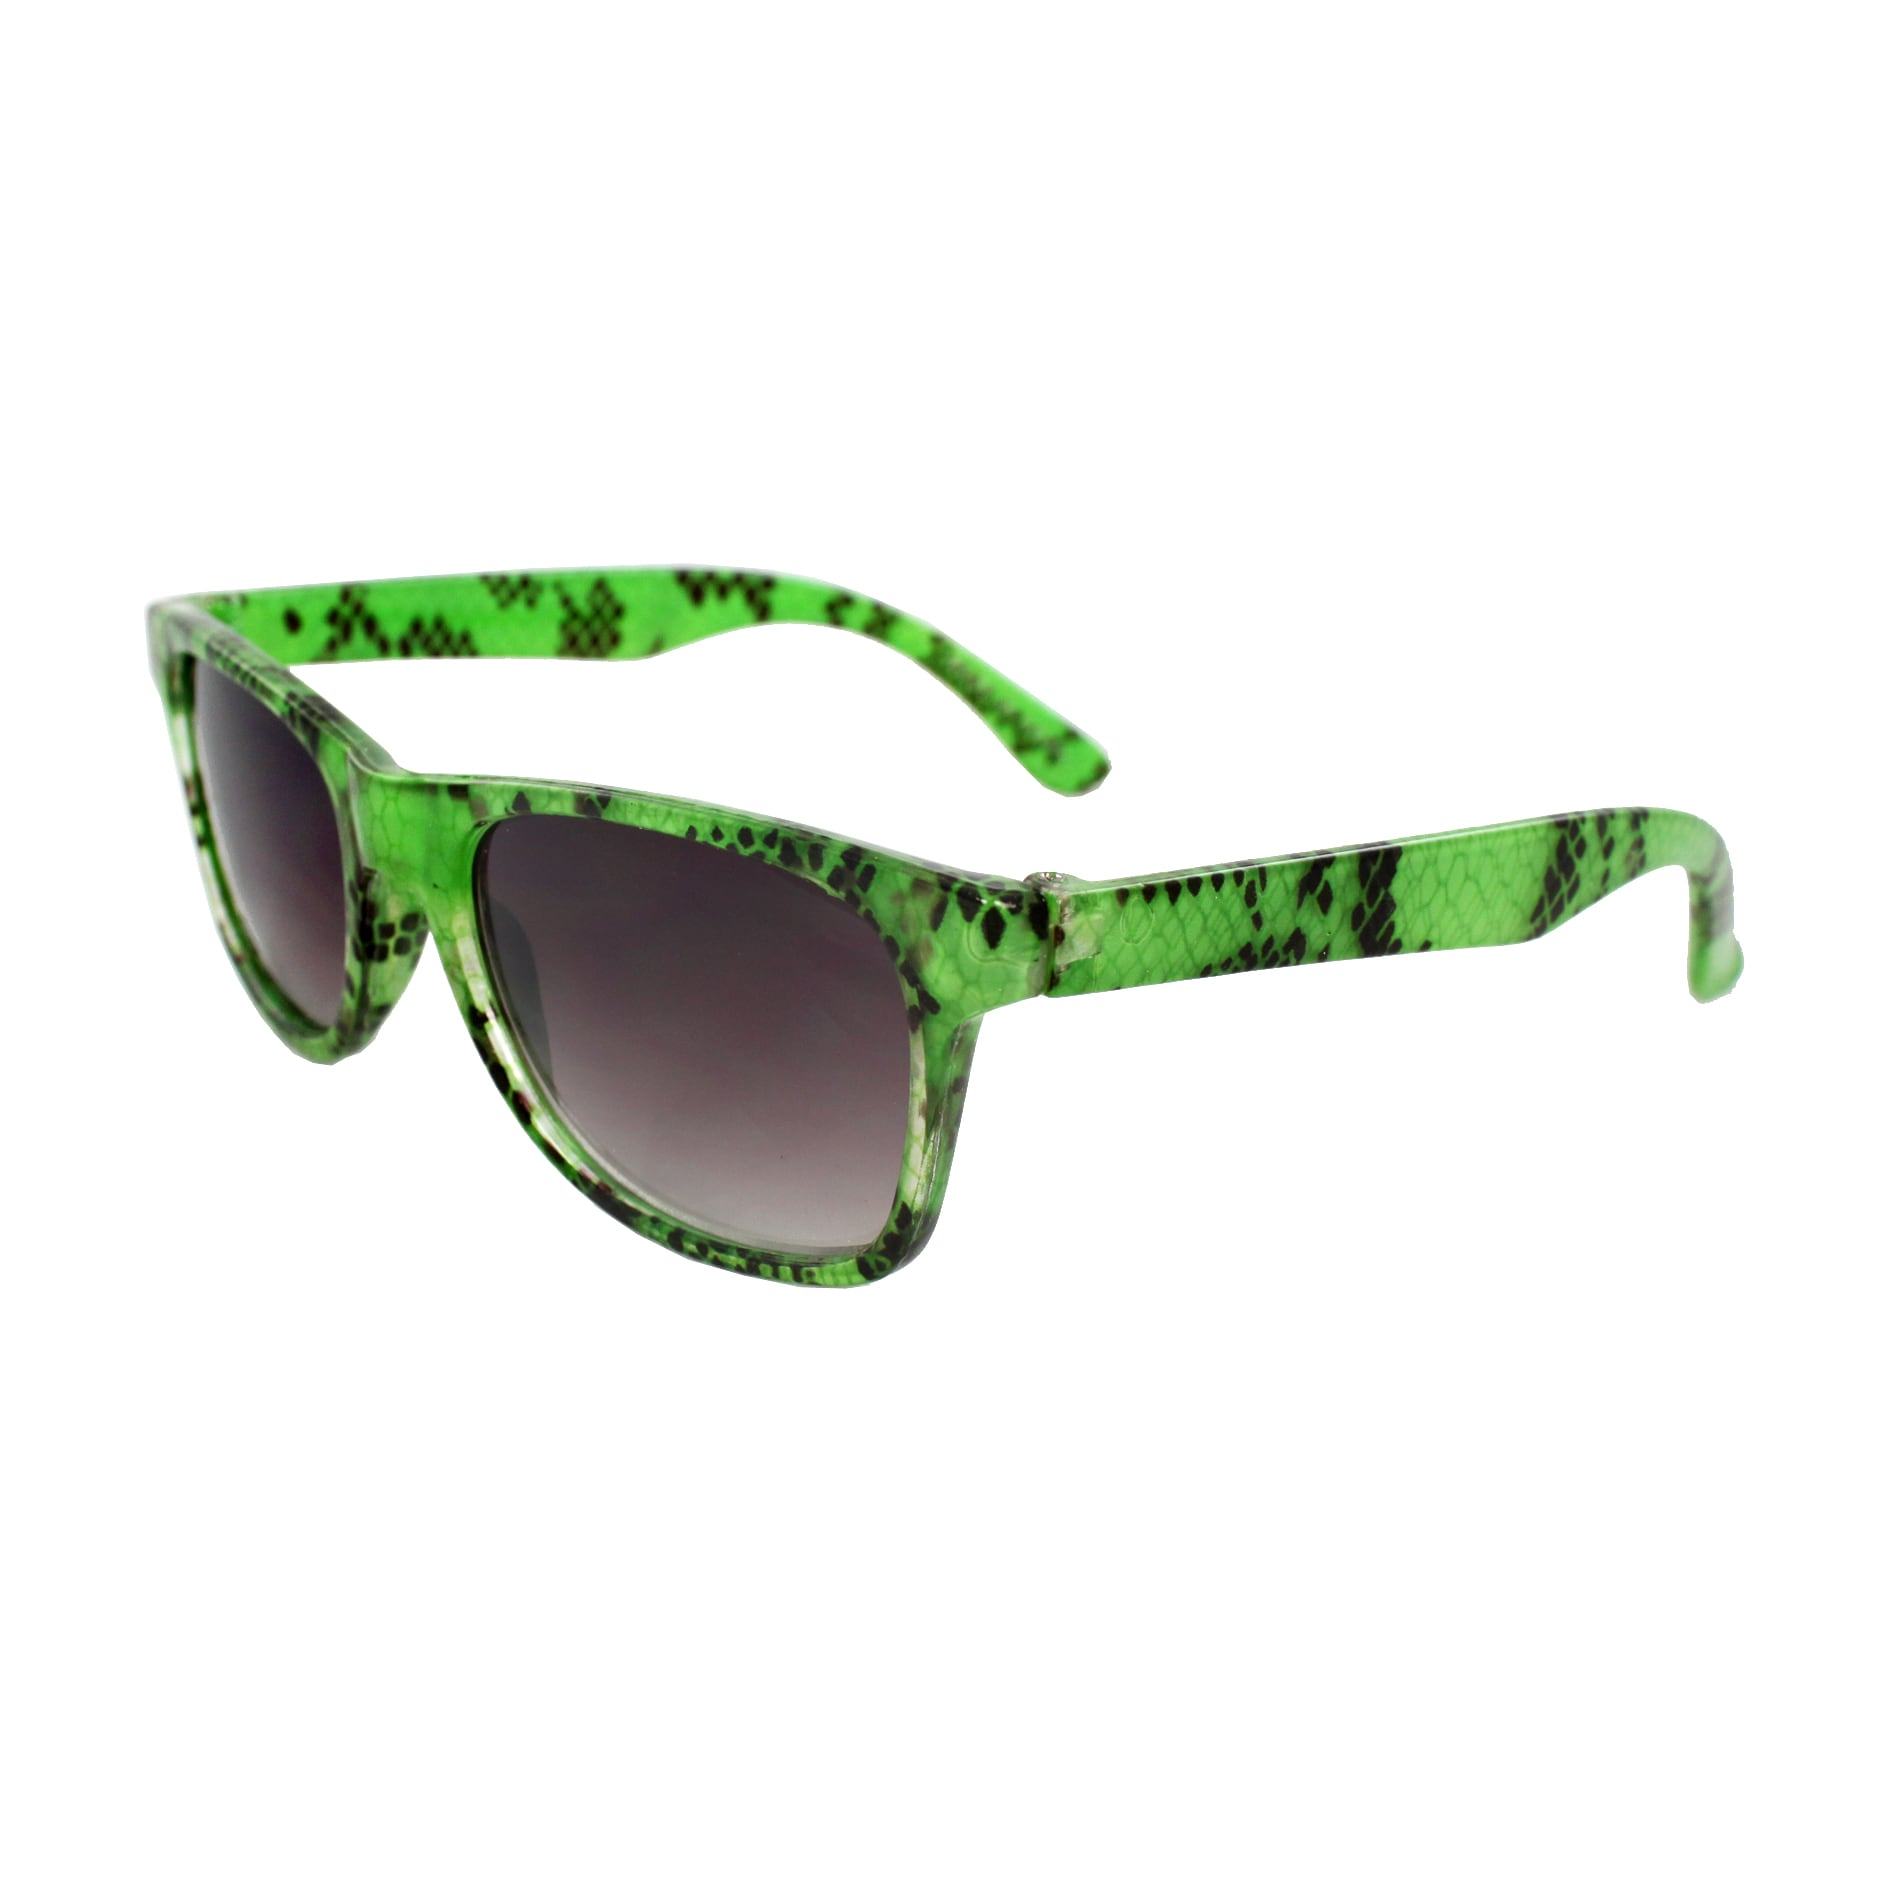 Kid's K3115-GNPB Oval Green Frame Fashion Sunglasses with Black Shatter Design